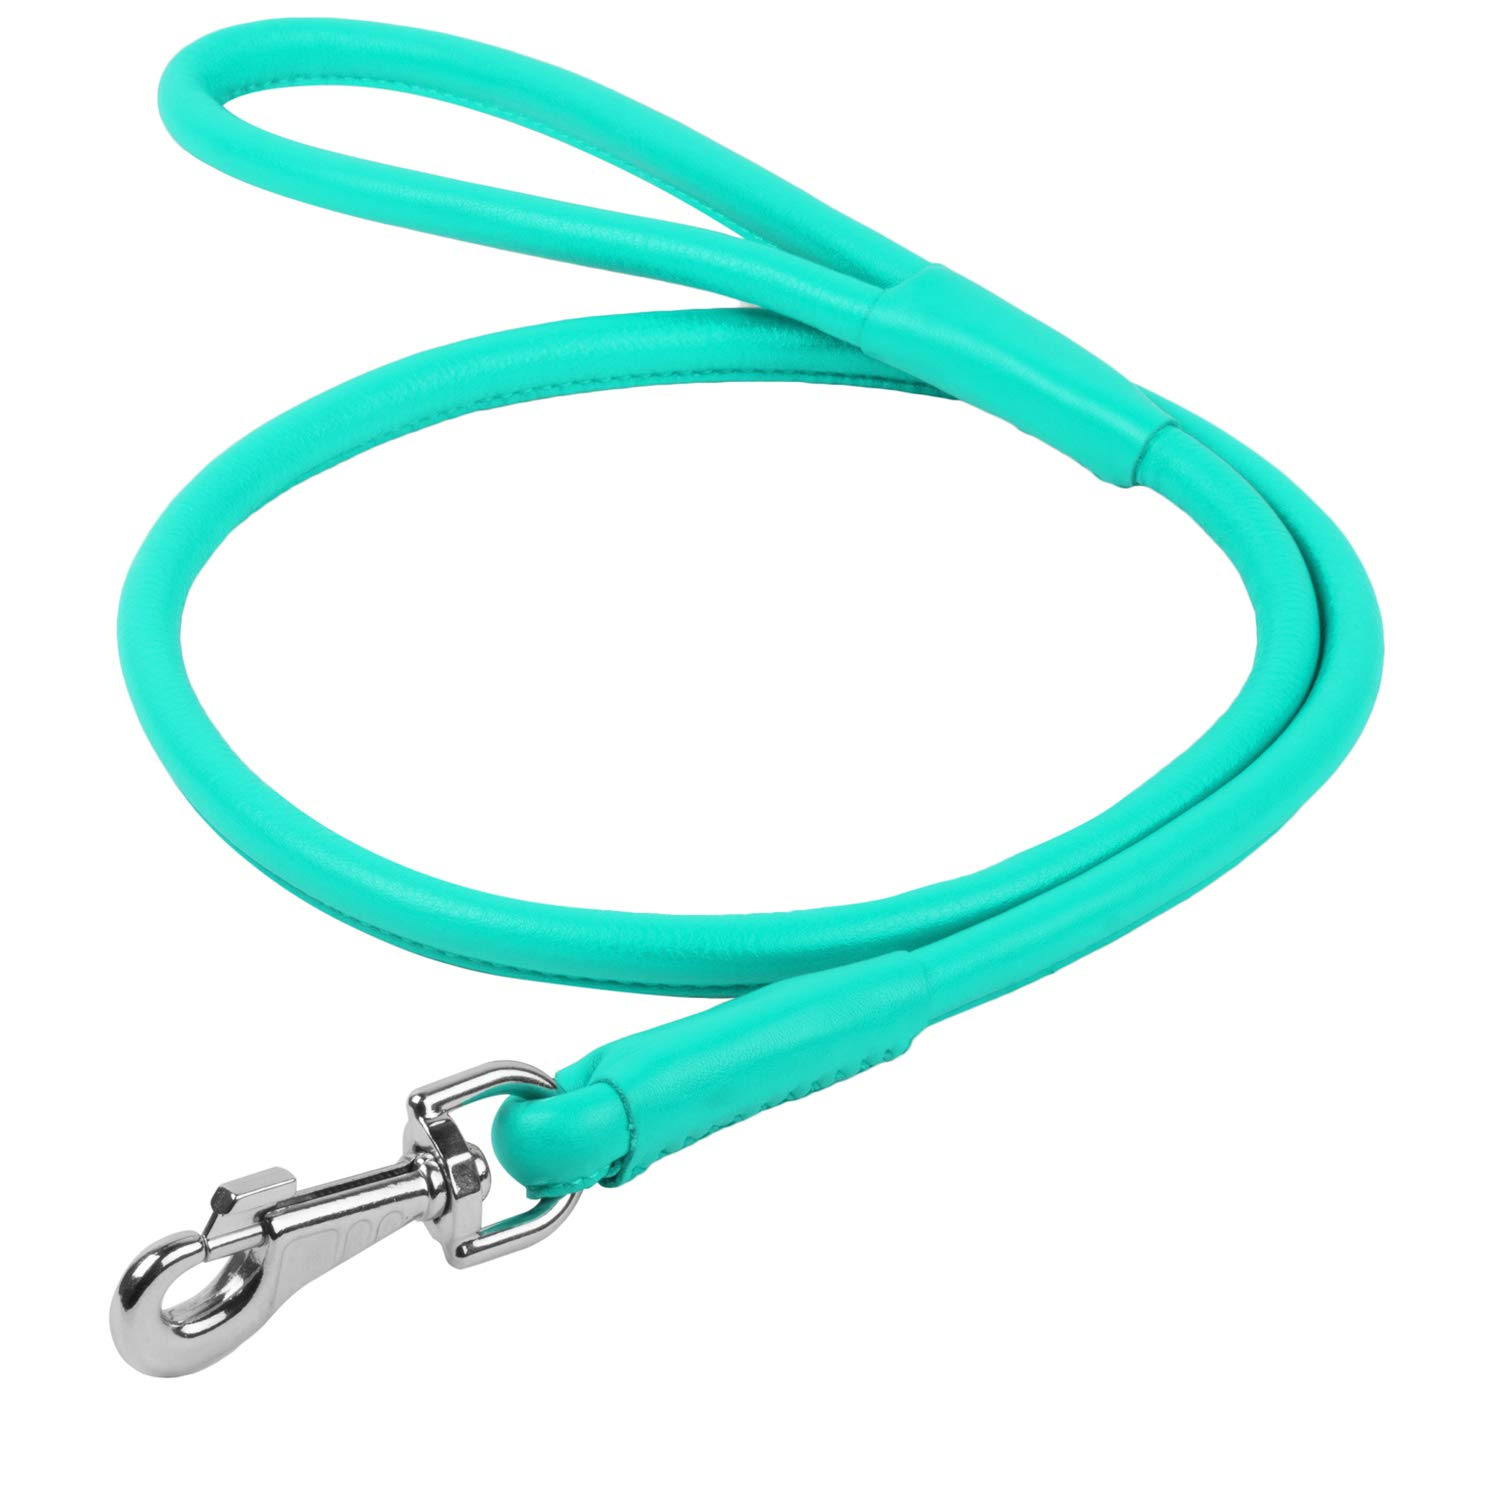 Rolled Leather Dog Leash 4 ft - Soft Dog Lead for Small Medium Large Dogs Puppy - Red Blue Pink Purple Green Black Pet Leashes for Outdoor Walking Running Training Plus (Mint Green, 4 Ft x 3/8'' Wide) by WAUDOG (Image #1)